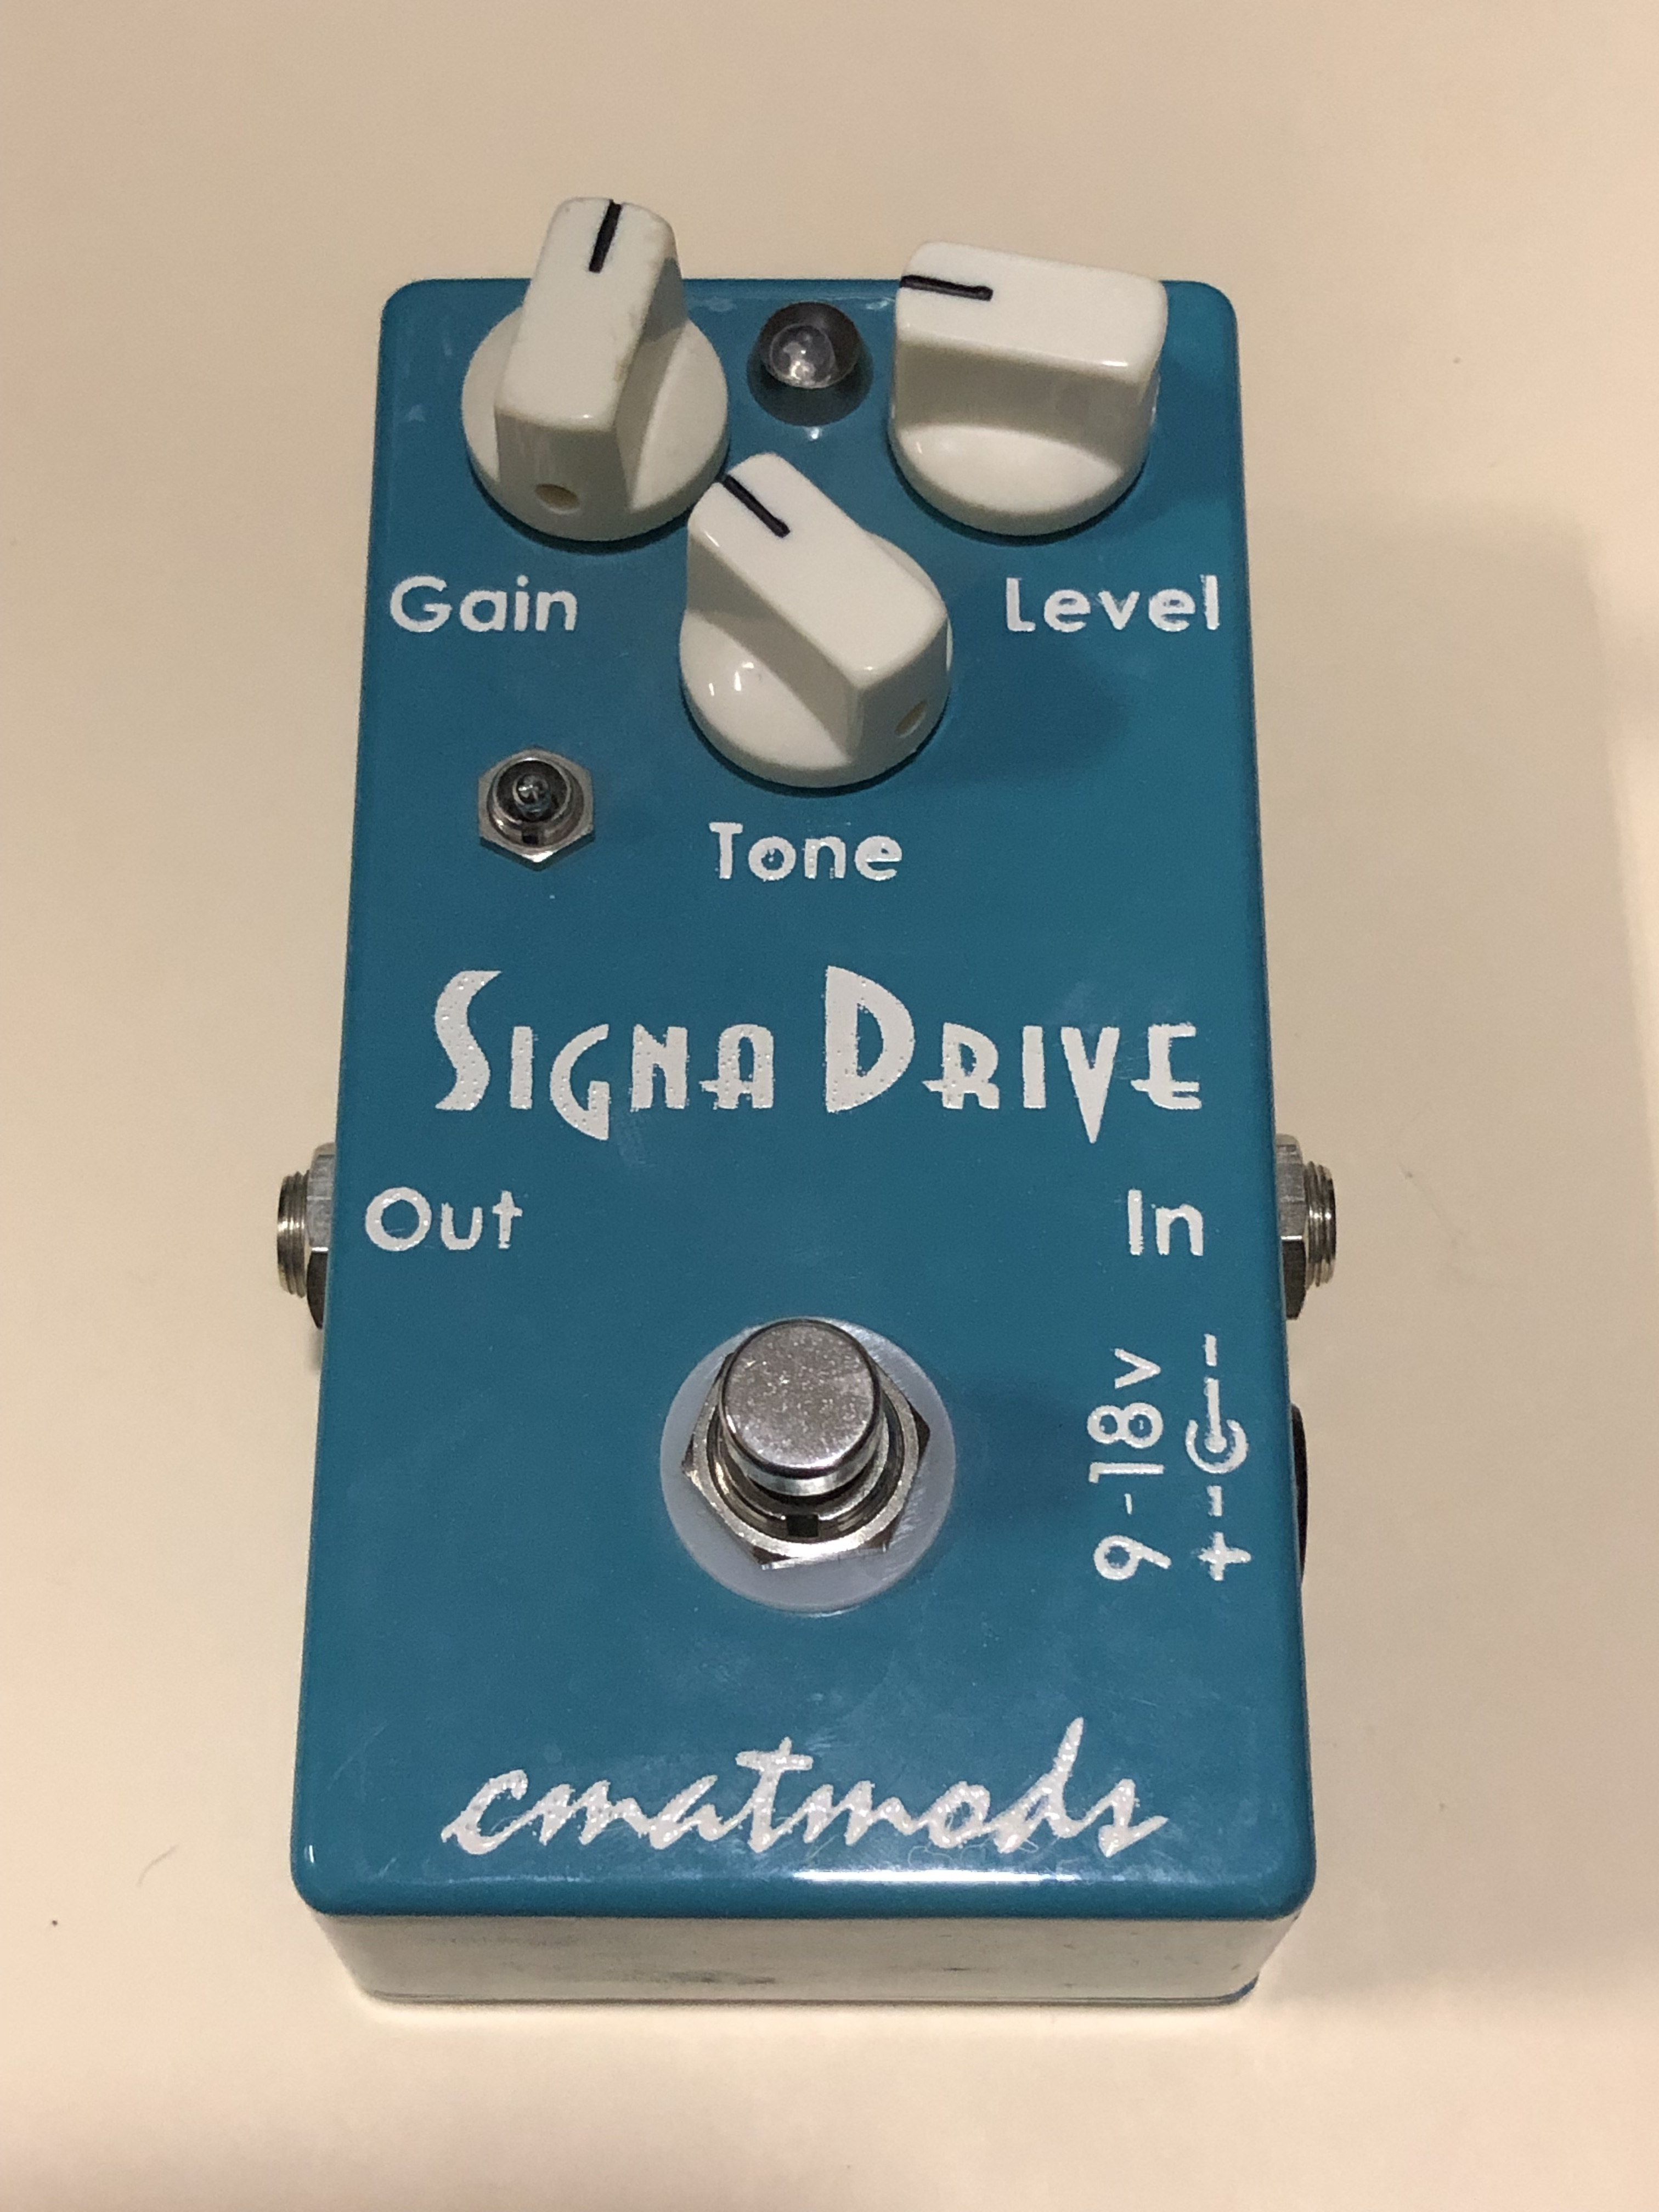 CMATMODS - SIGNA DRIVE - OVERDRIVE EFFECTS PEDAL